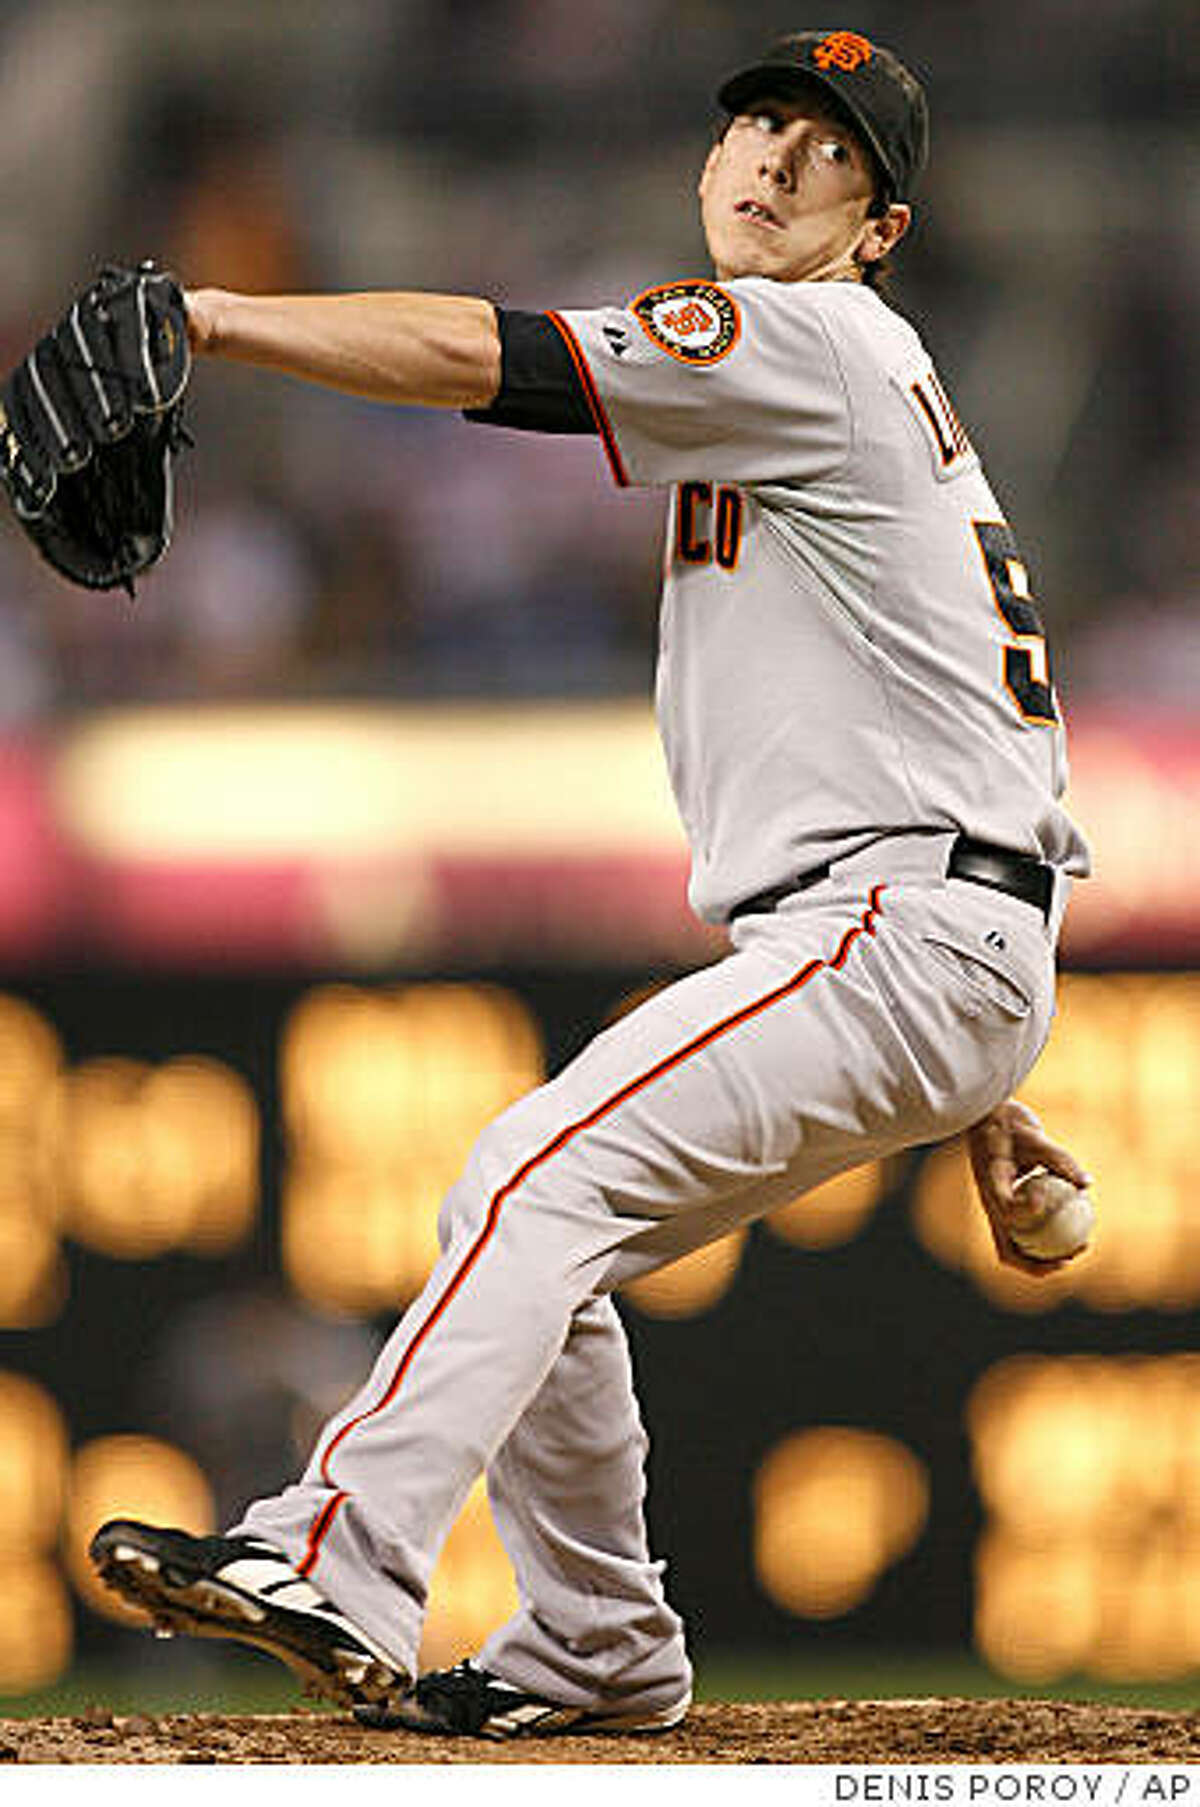 San Francisco Giants pitcher Tim Lincecum delivers during the first inning of a baseball game against the San Diego Padres, Saturday, Sept. 13, 2008, in San Diego. (AP Photo/Denis Poroy)